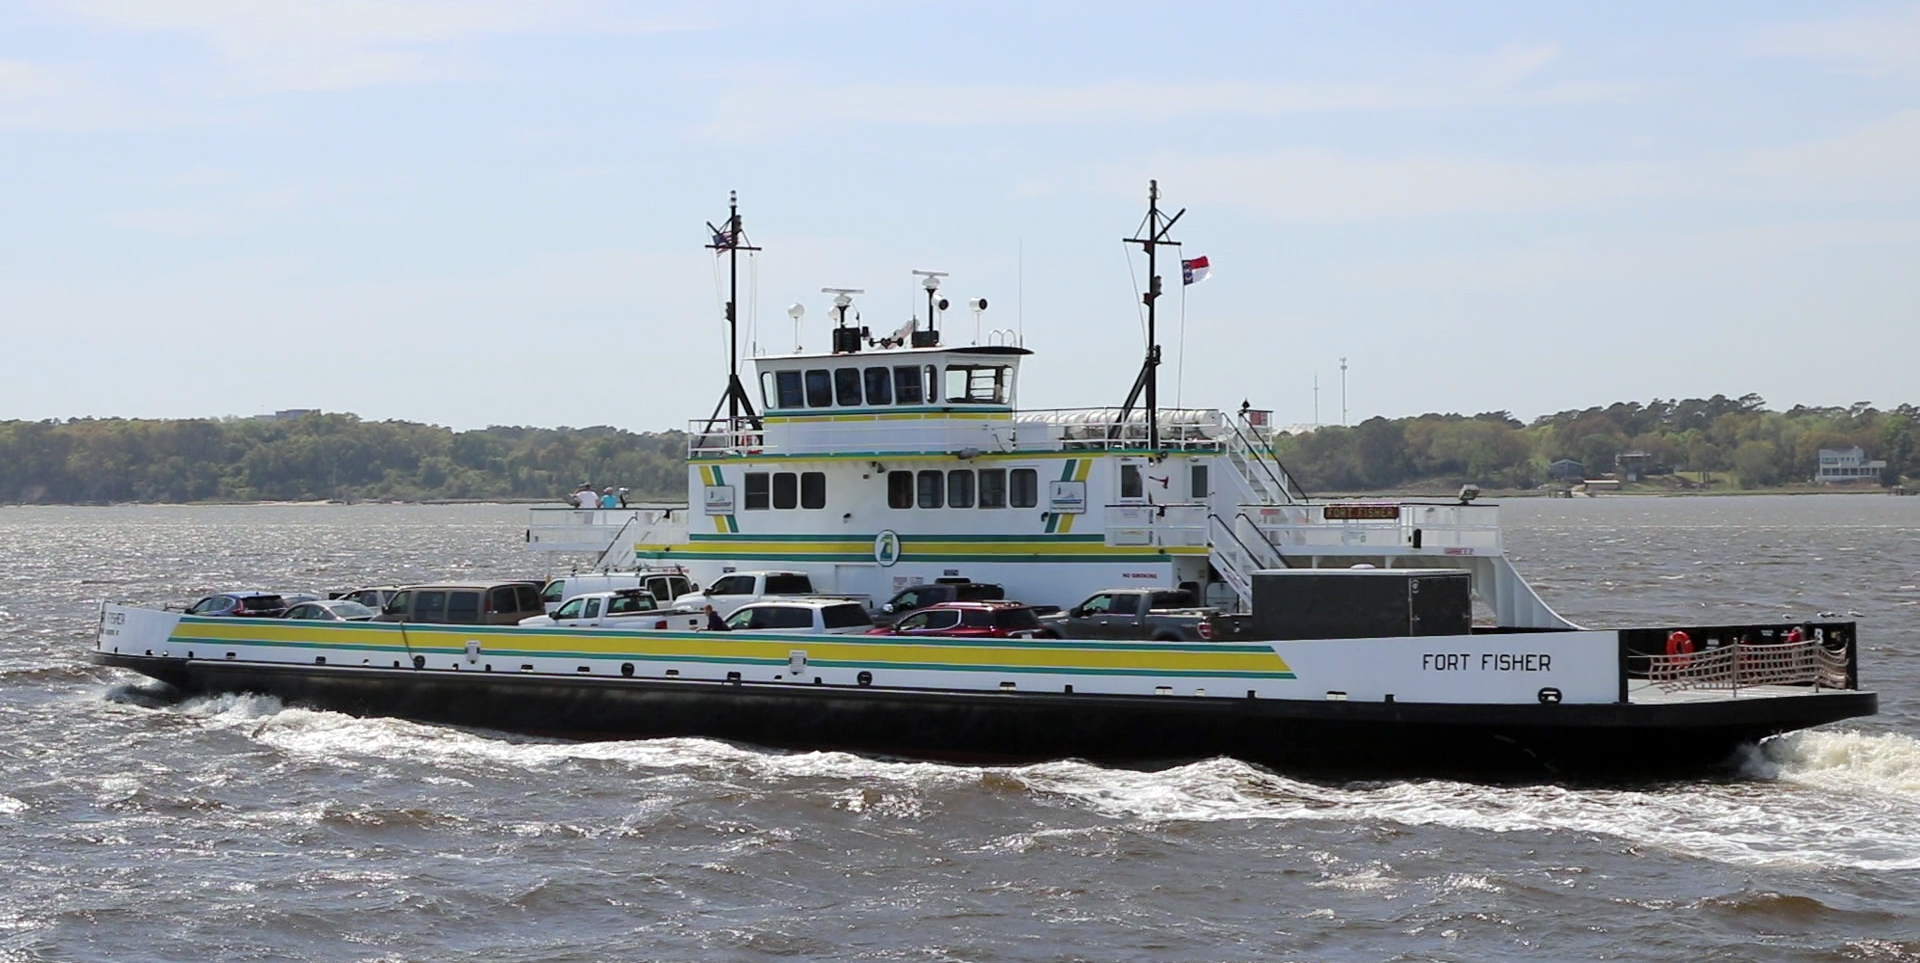 Fort Fisher / Southport Ferry